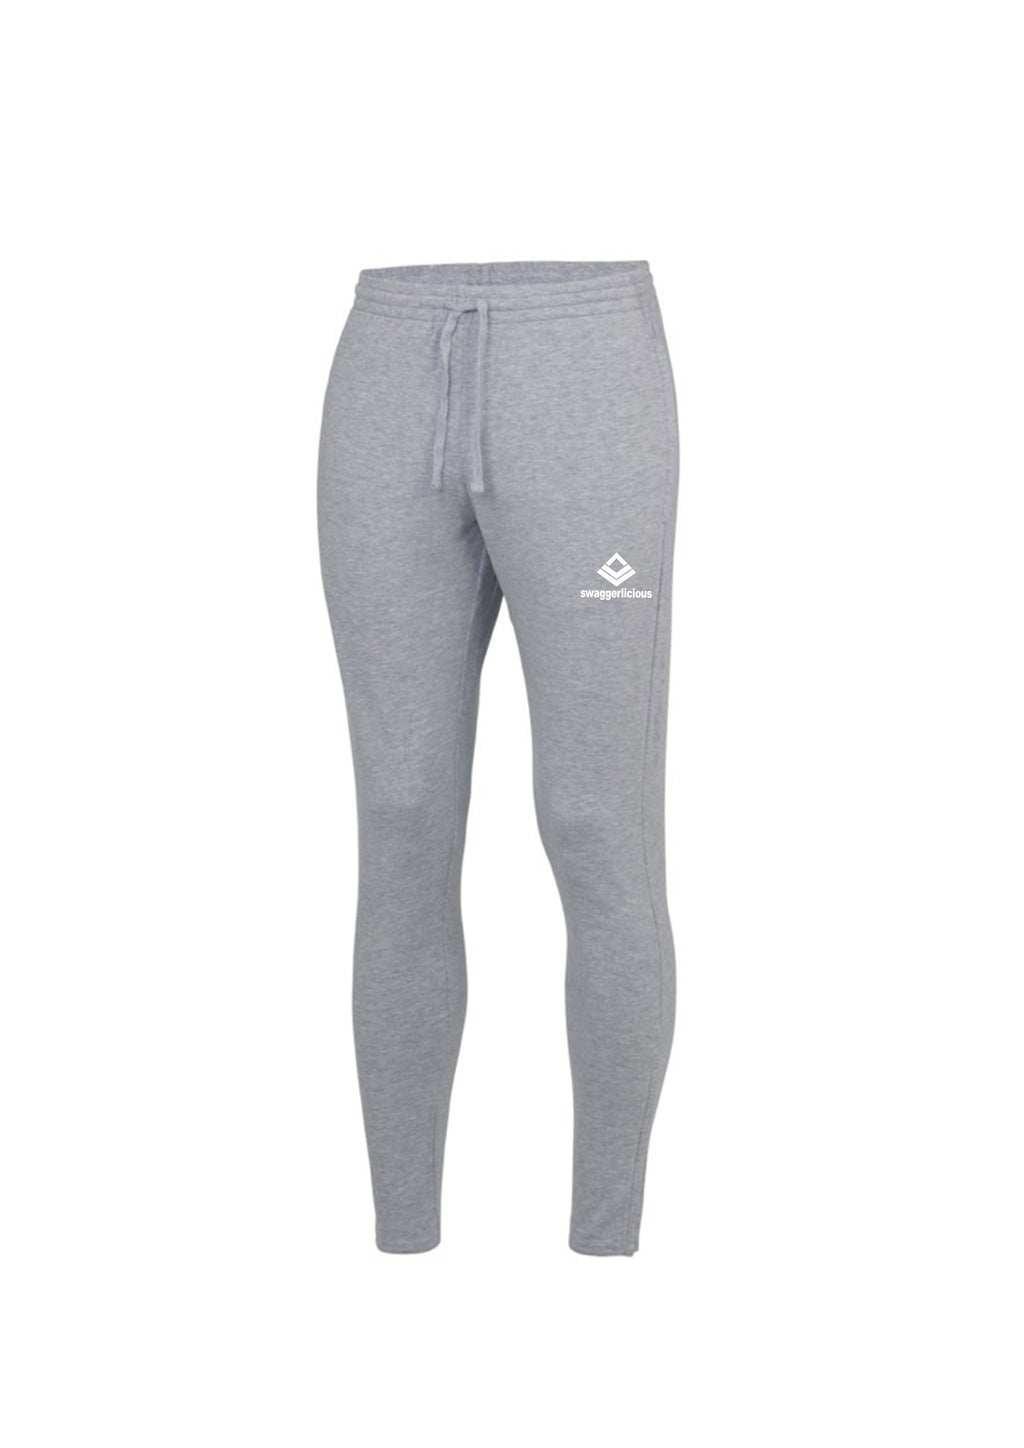 Swaggerlicious Sport Grey Cool Jogging Pants with White Logo